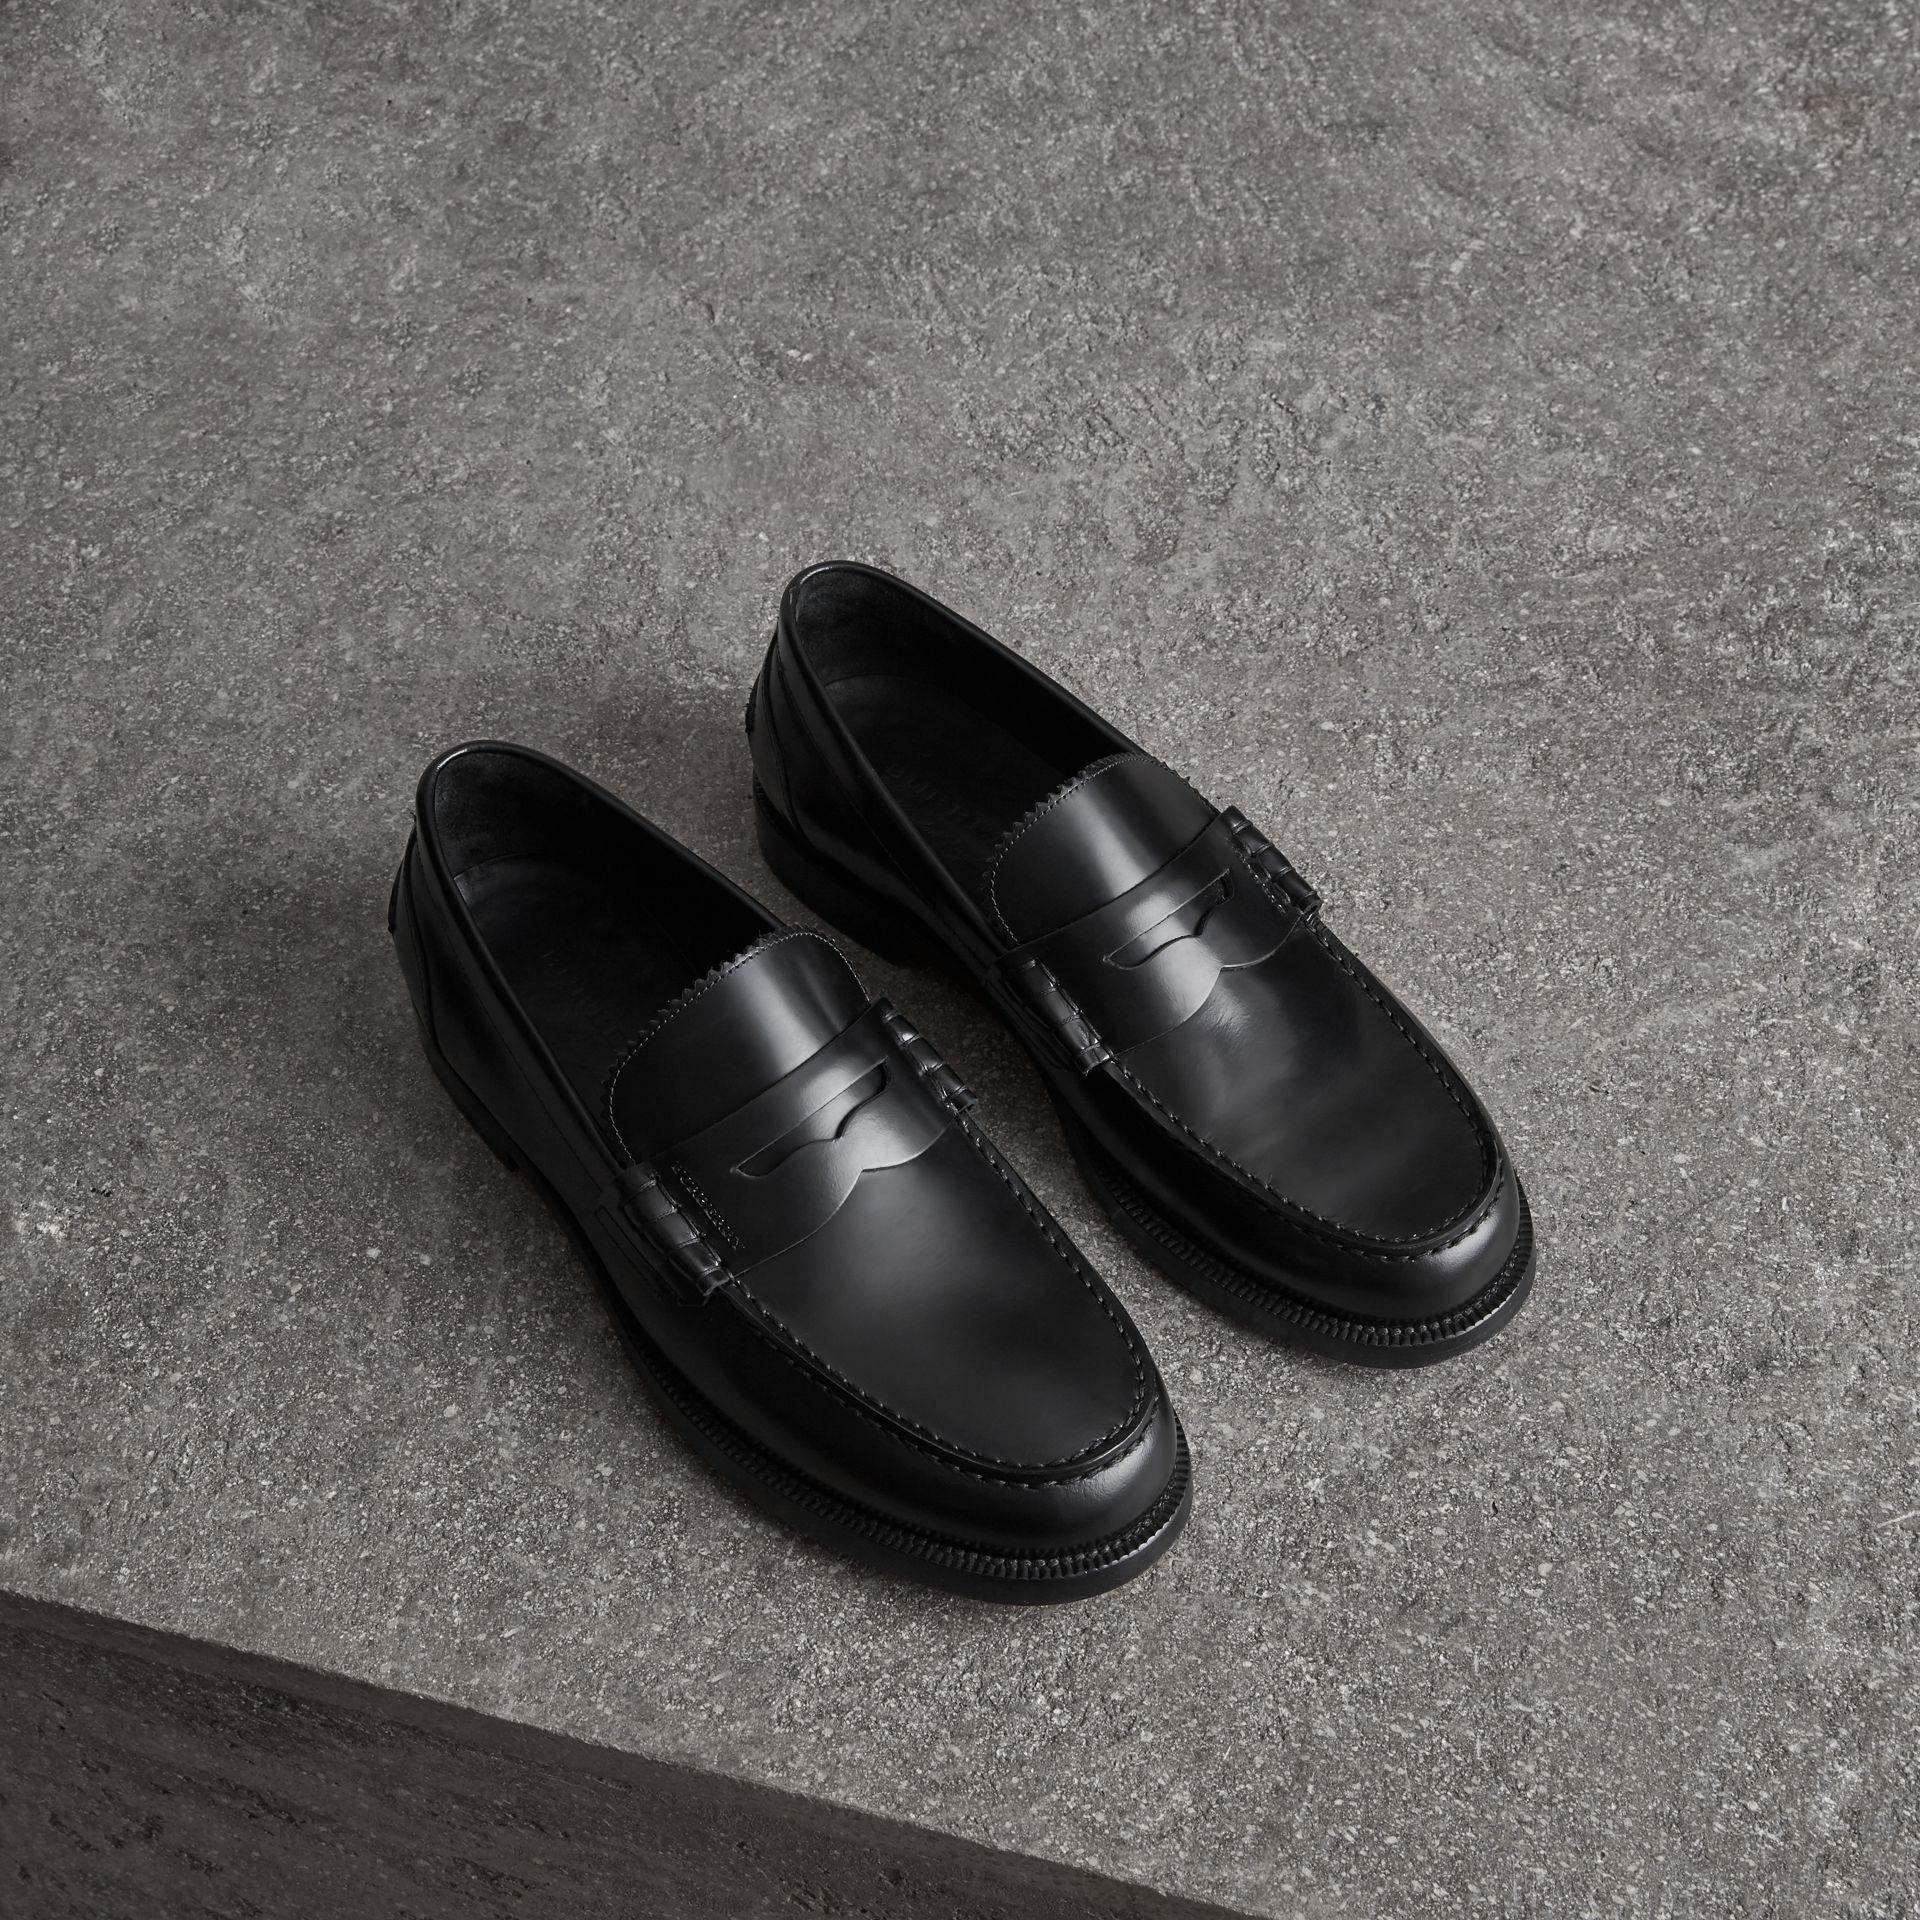 14b28670e45 Lyst - Burberry Leather Penny Loafers in Black for Men